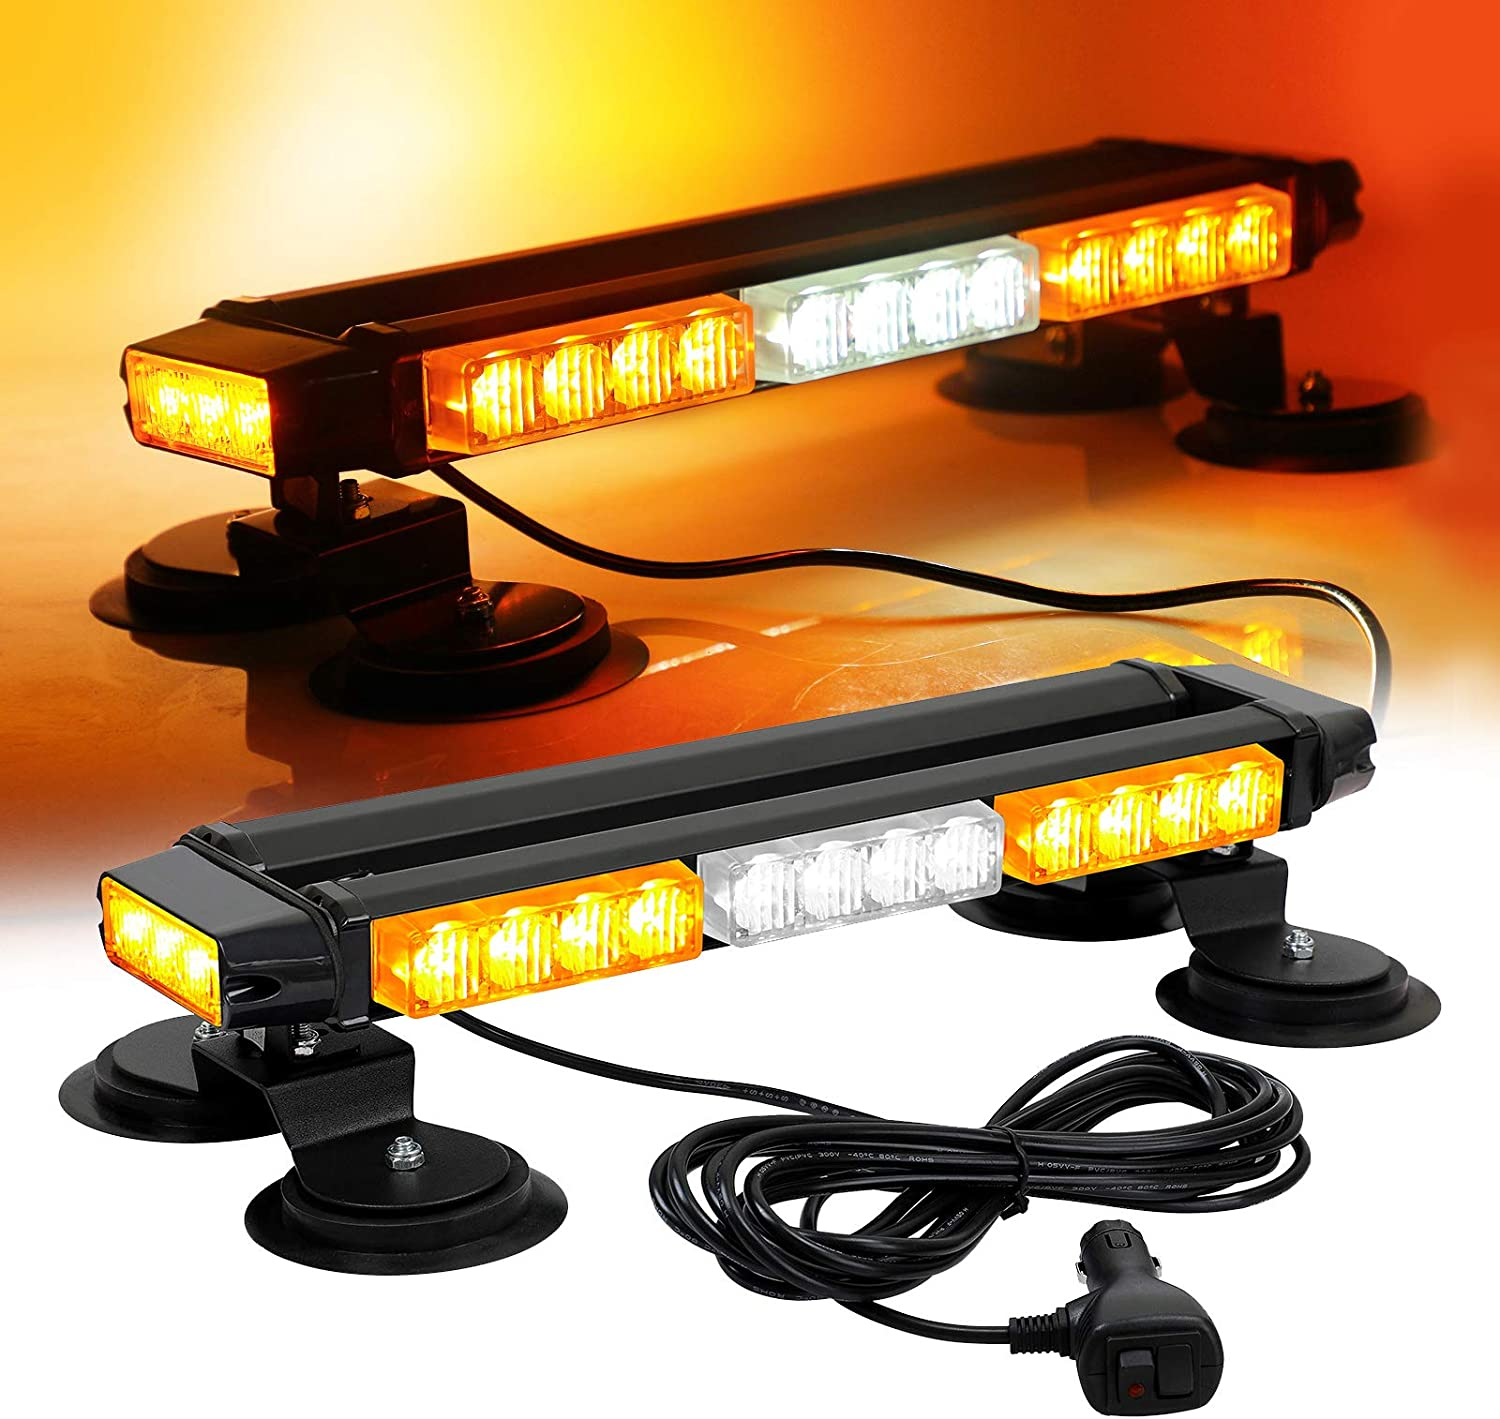 Yellow-White Windshield with Suction Cups Dash Linchview 16 LED High Intensity LED with 18 strobe patterns Law Enforcement Emergency Beacon Hazard Warning Strobe Lights for Vehicle Car Truck SUV Interior Roof